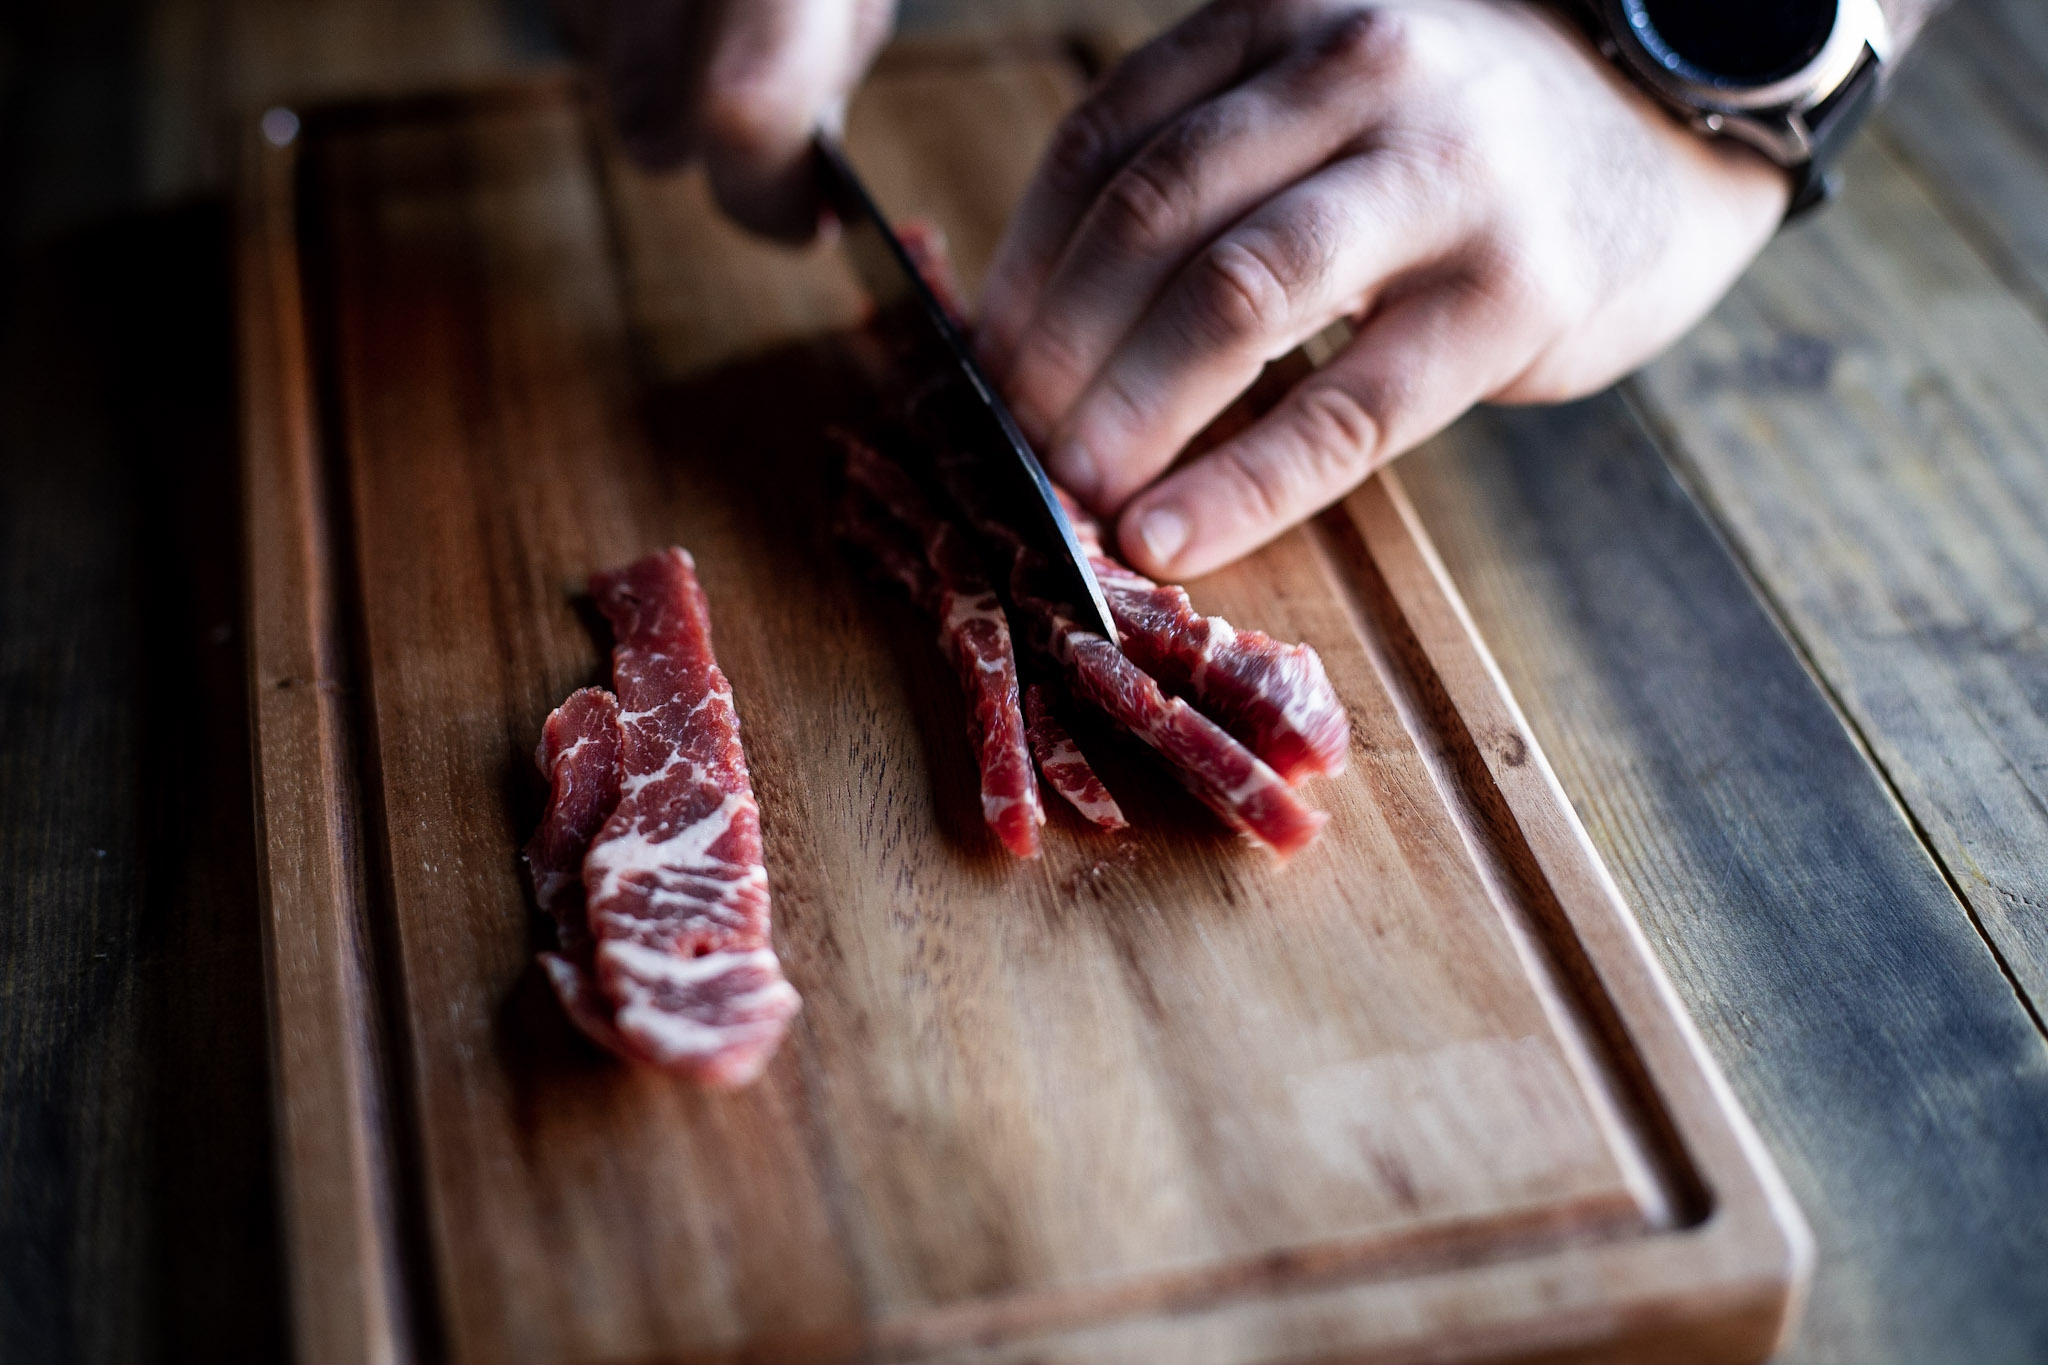 Slicing the chilled meat